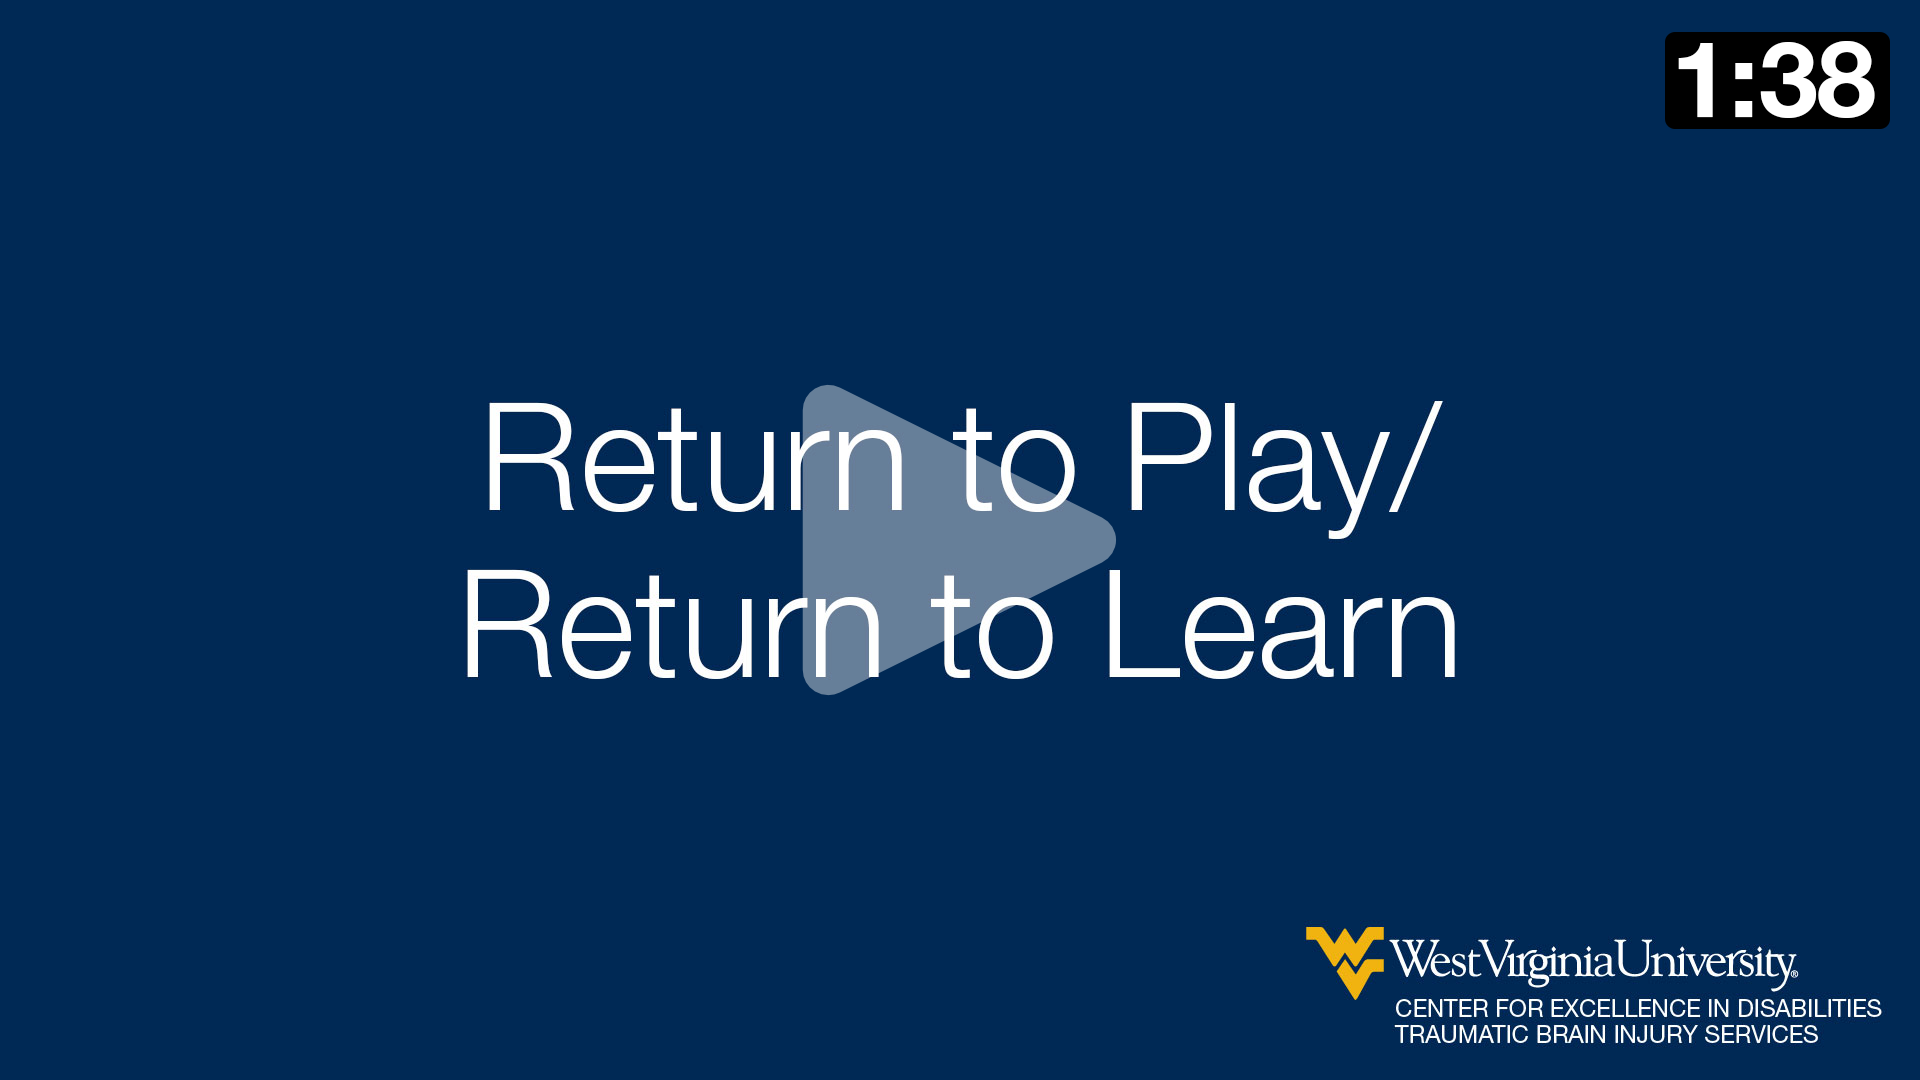 Nick Davidson talks about return to play/return to learn.